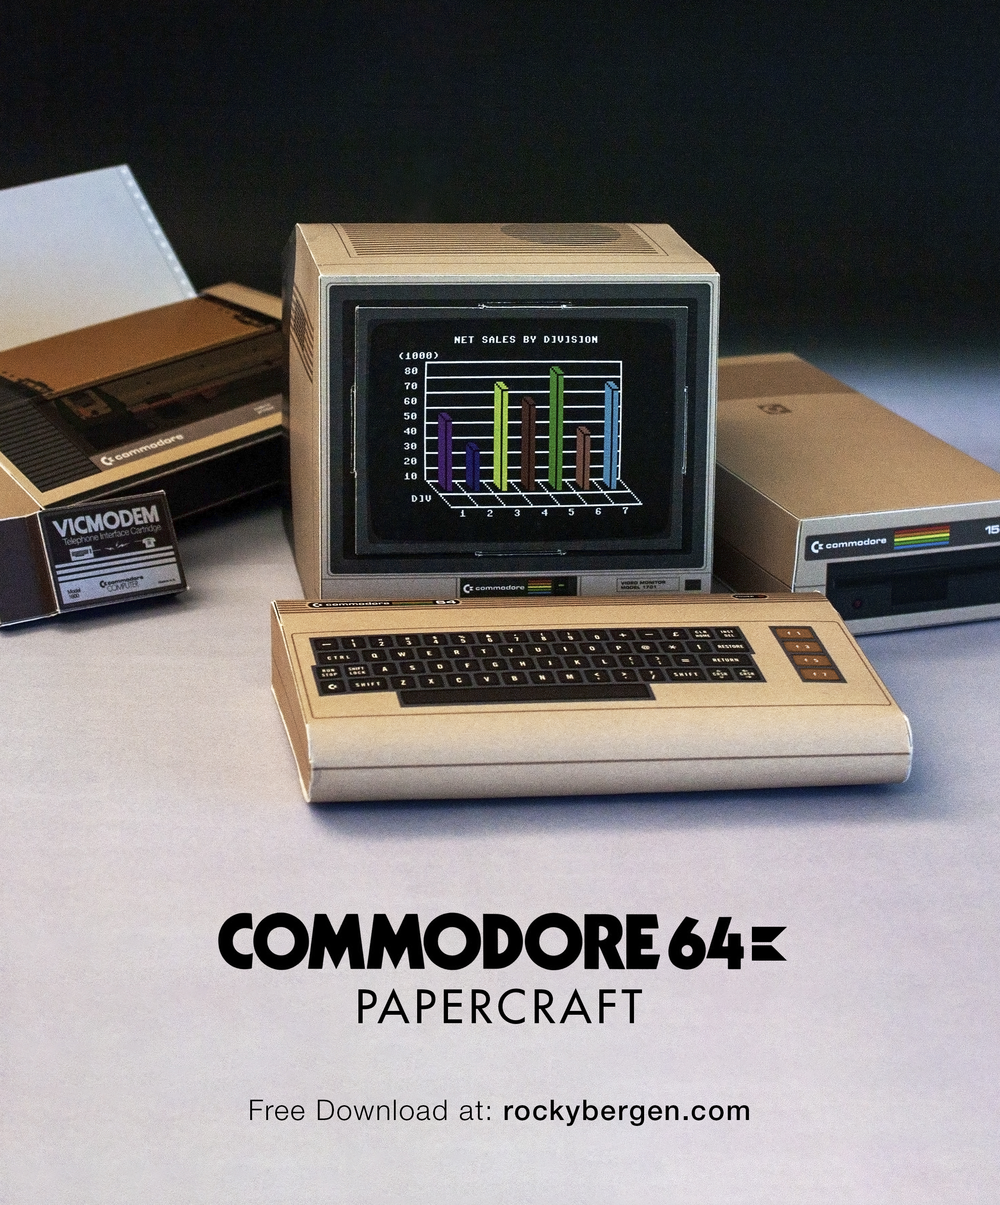 Commodore 64 Video Games CD, Includes Emulator With Over 17,000